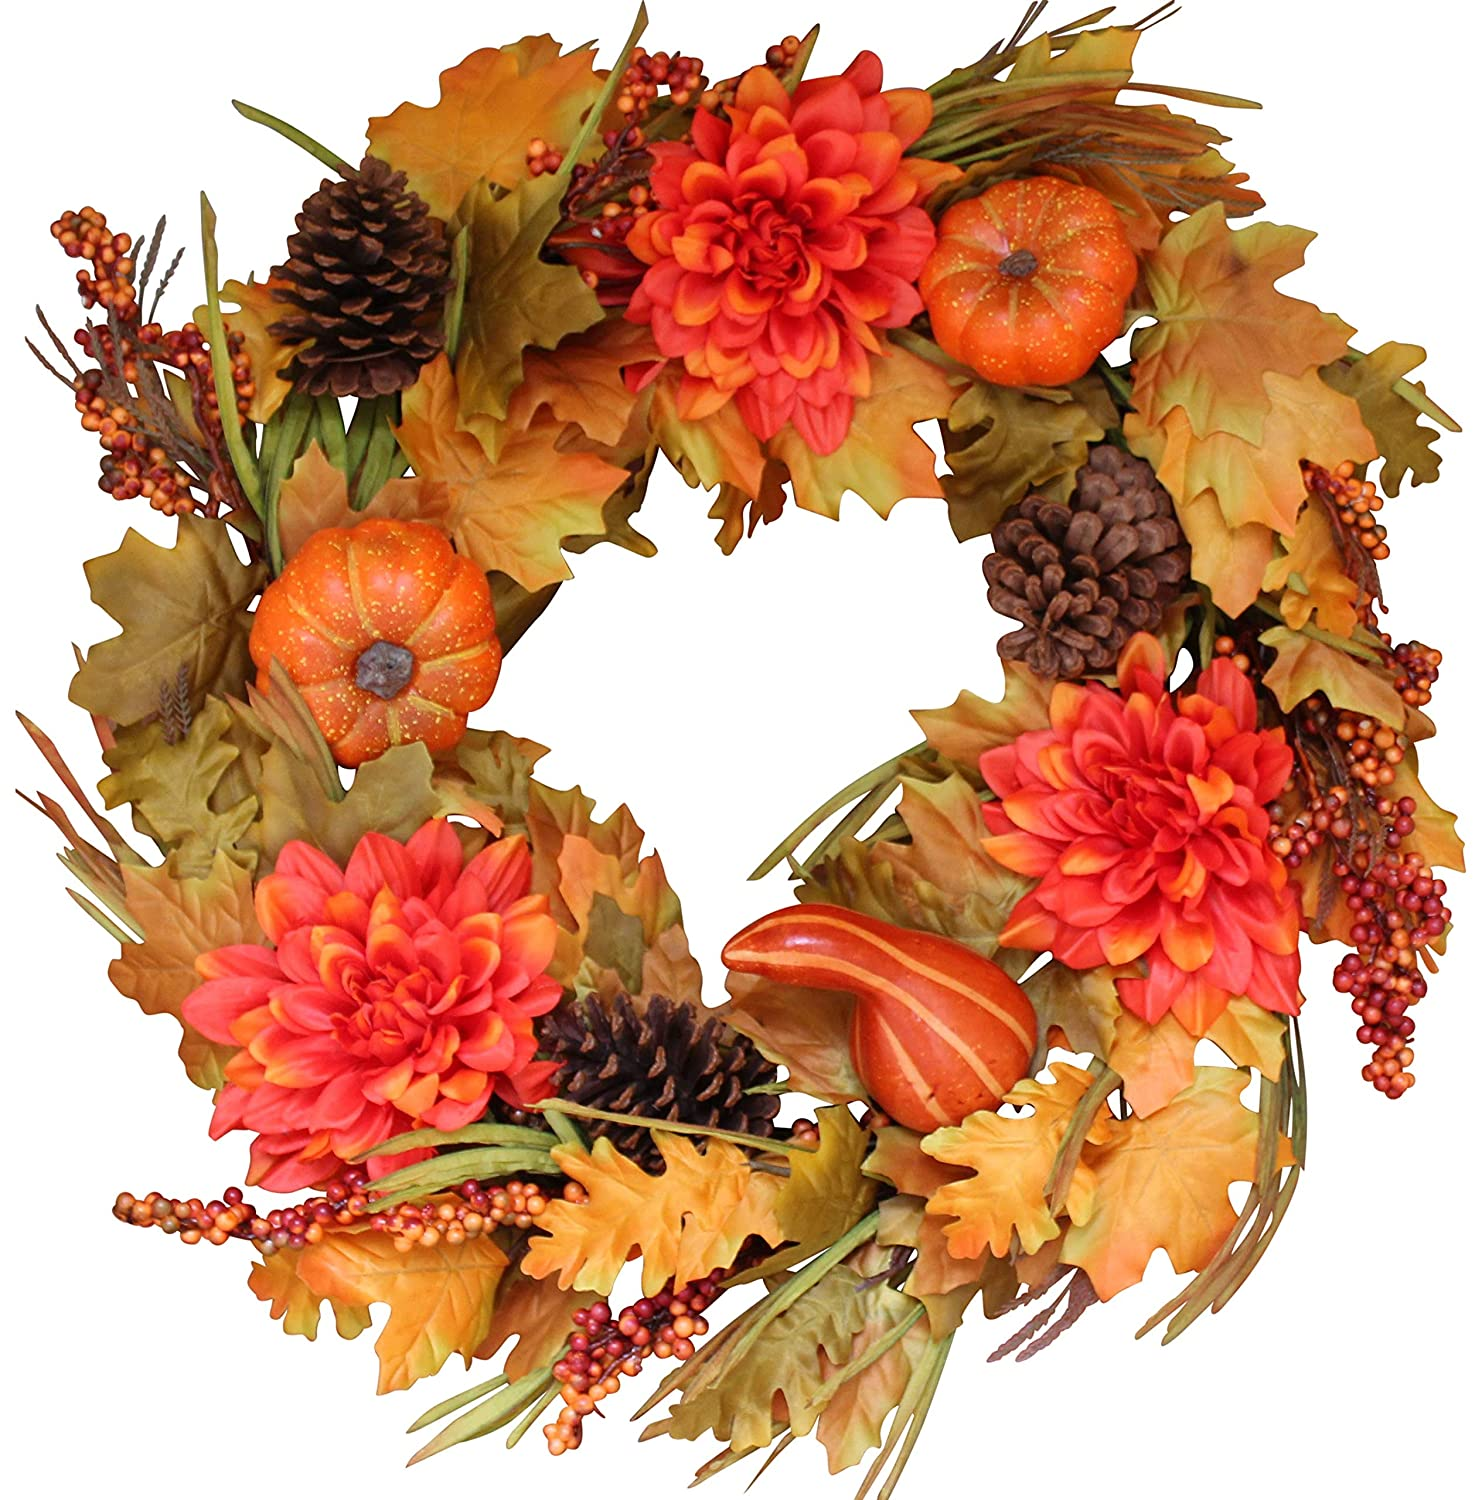 Oakwood Silk Fall Door Wreath 22 Inches - Autumn Colors Enhance Home Decor, Approved for Covered Outdoor Use, Beautiful White Gift Box Included The Wreath Depot